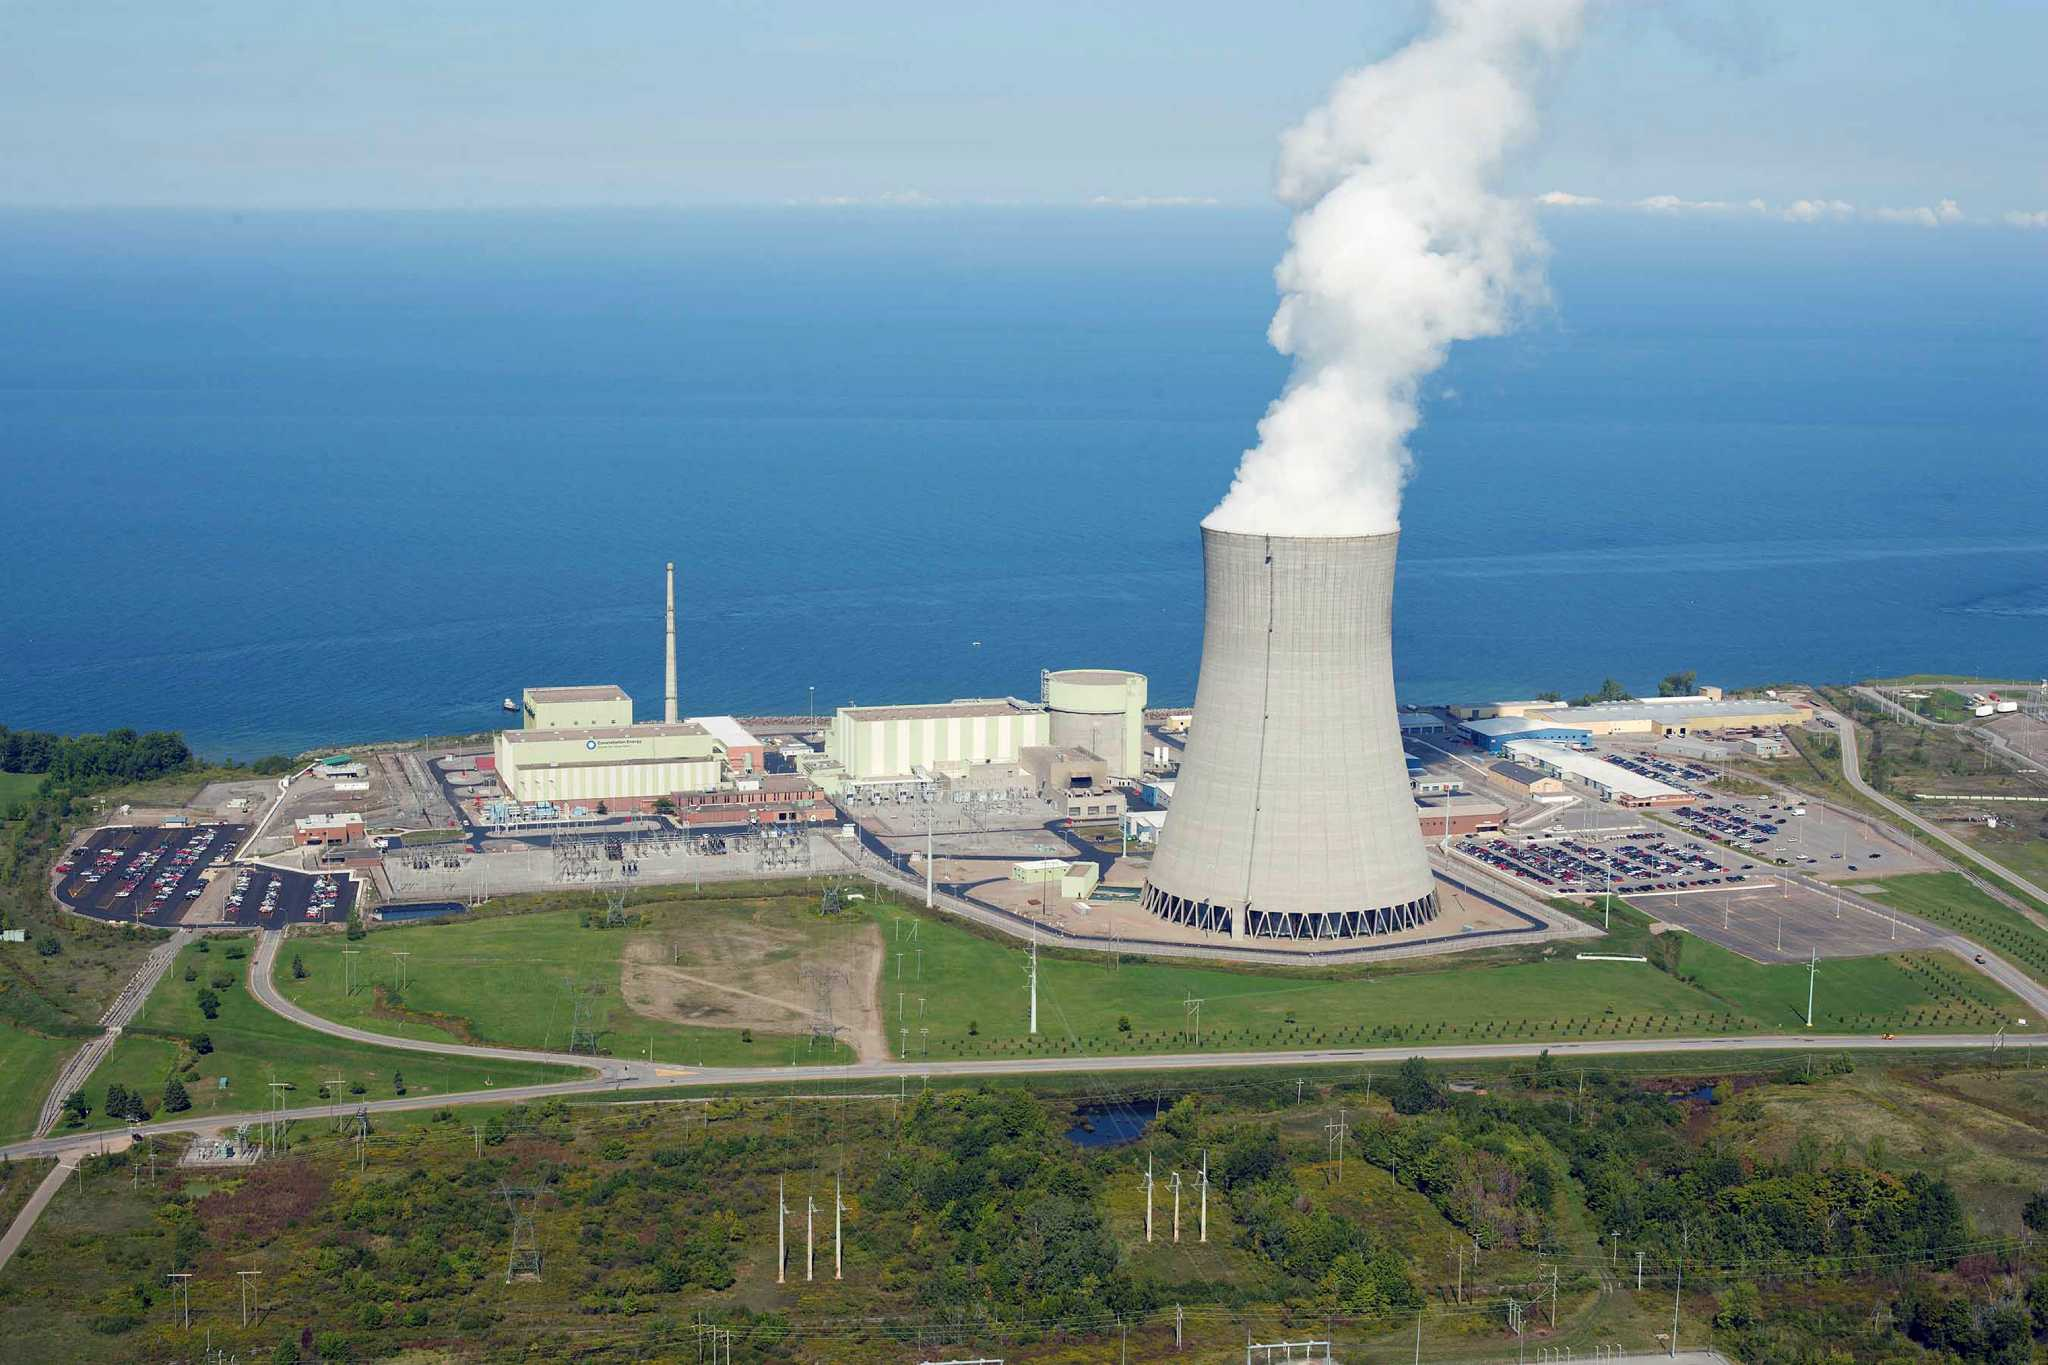 nuclear power plants sparking an american debate History of us nuclear plants responding to extreme natural events readmore fact sheet oct 10, 2018  road map for the deployment of  find more resources site navigation fundamentals expand navigation fundamentals what is nuclear energy how a nuclear reactor works nuclear fuel nuclear waste safety.